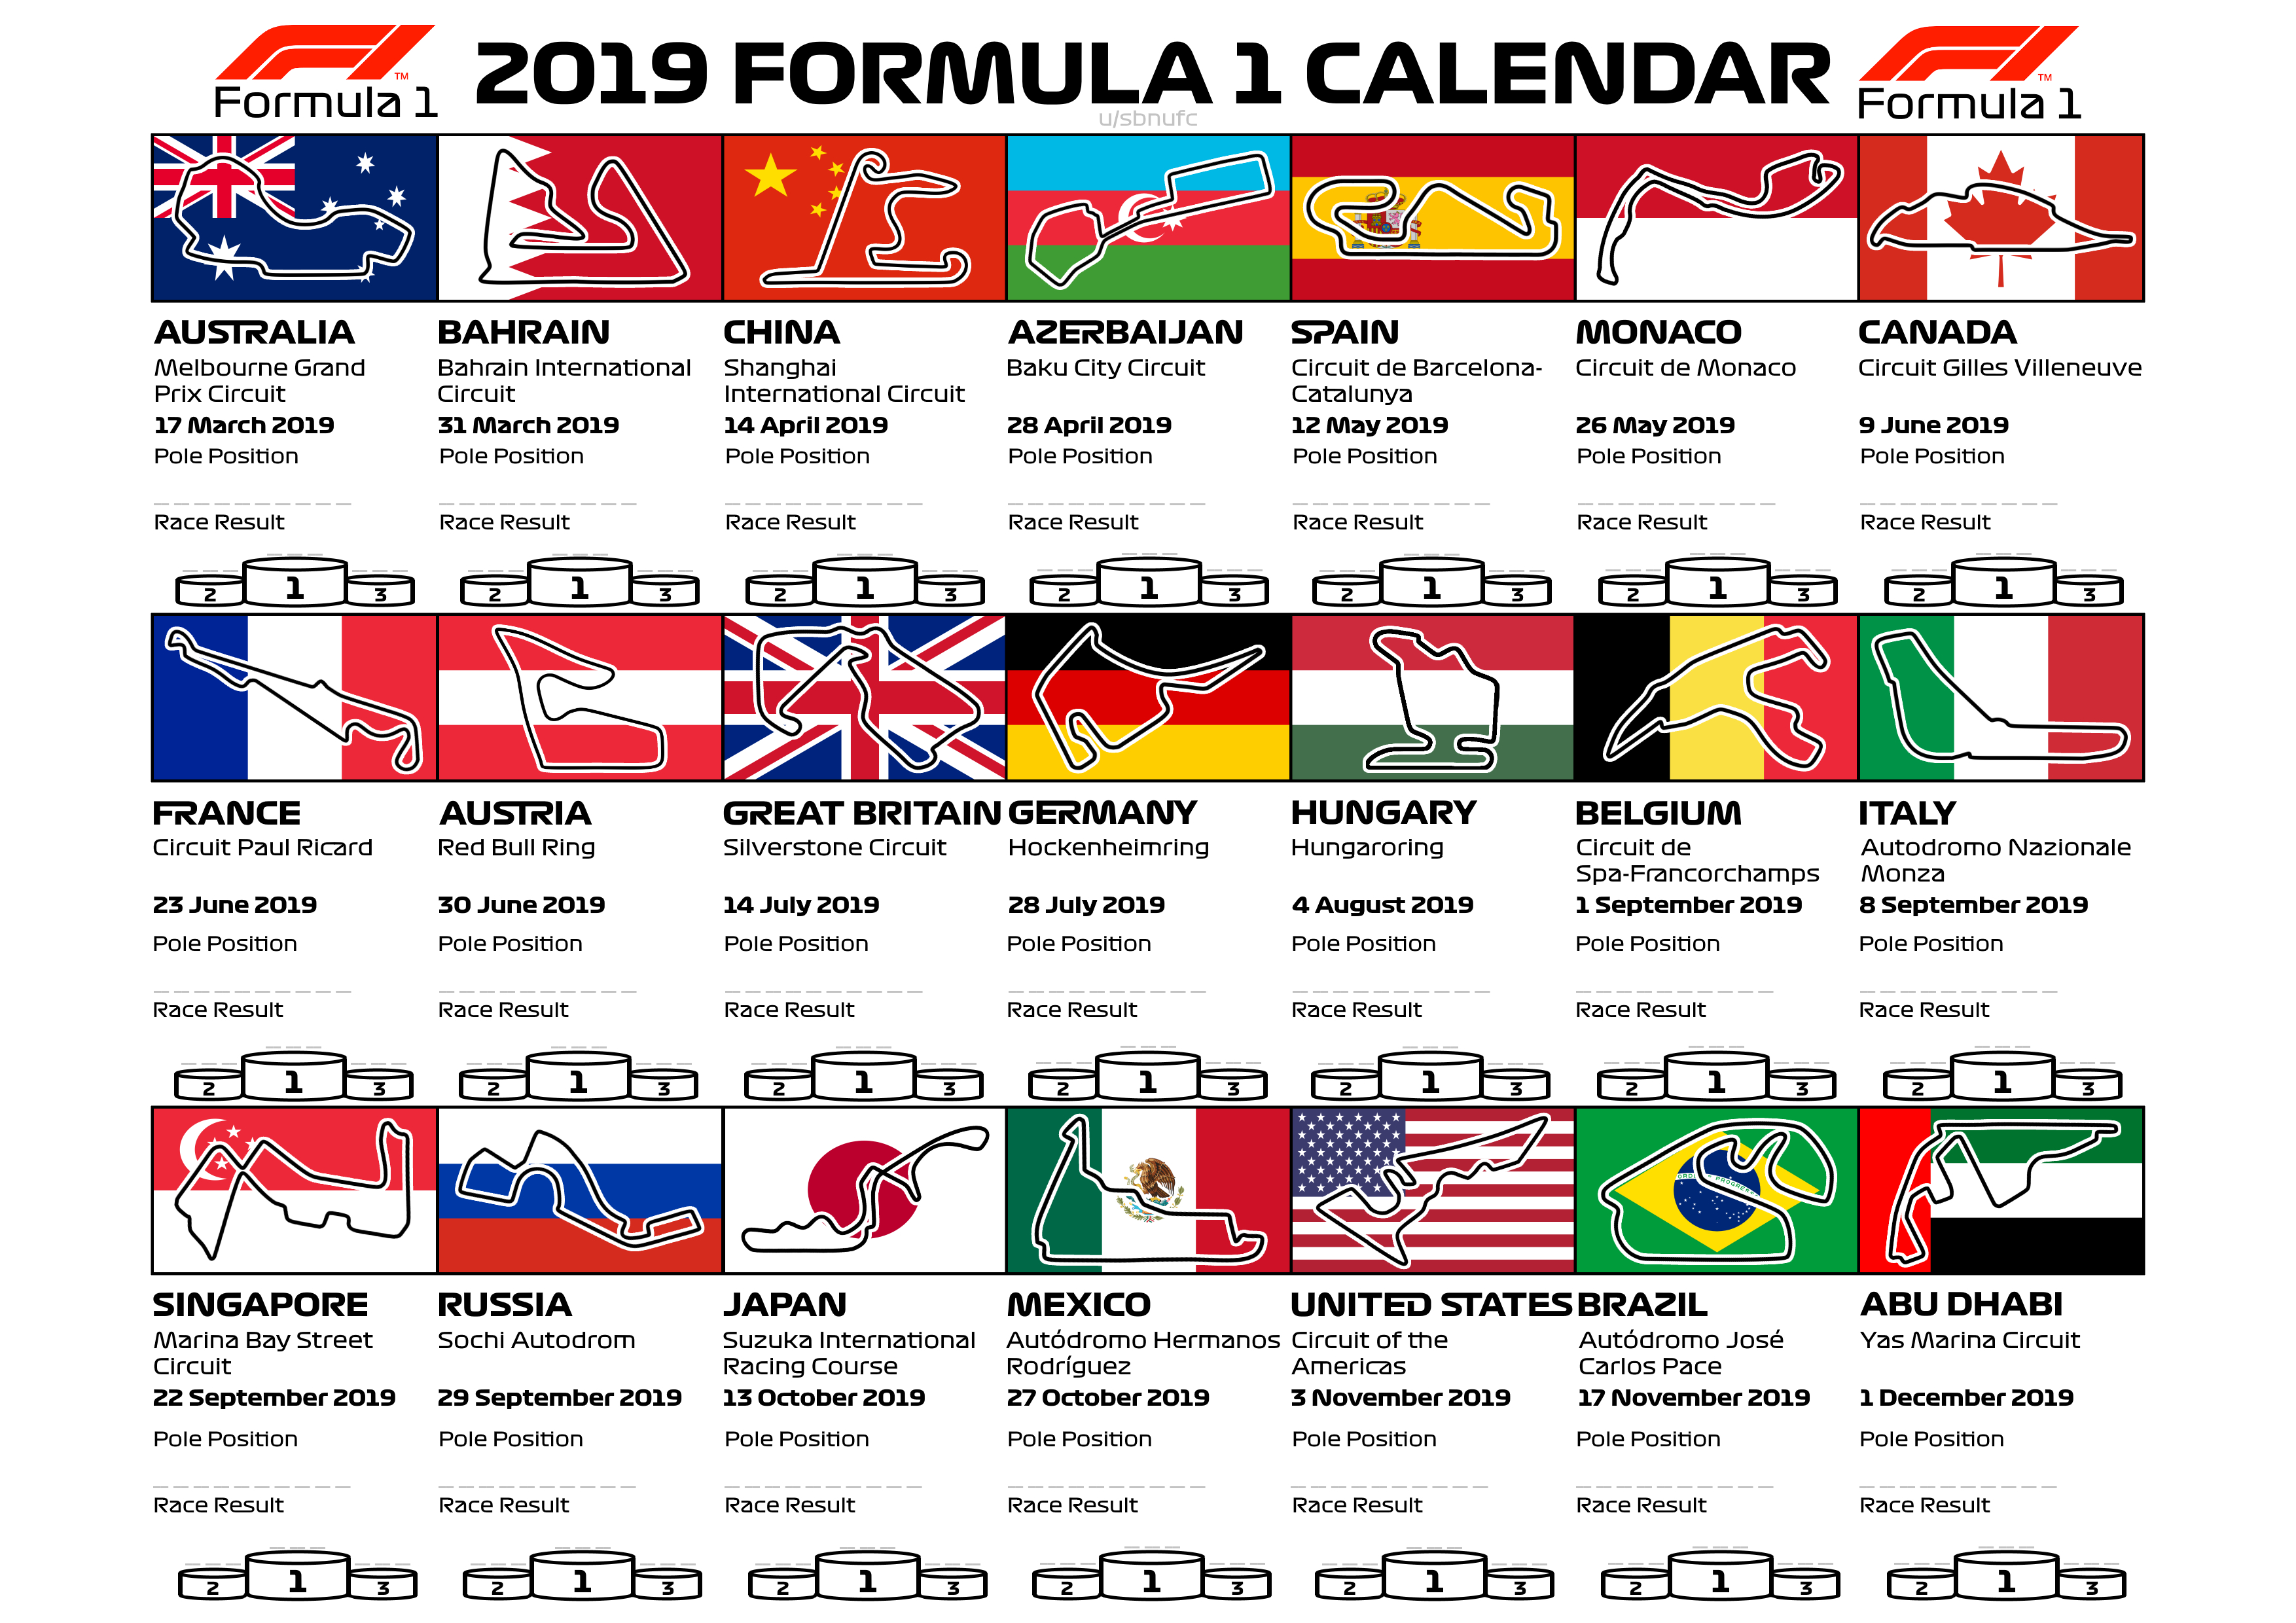 After Making A Calendar For The 2017 And 2018 Seasons, I Had Calendar 2019 Formula 1